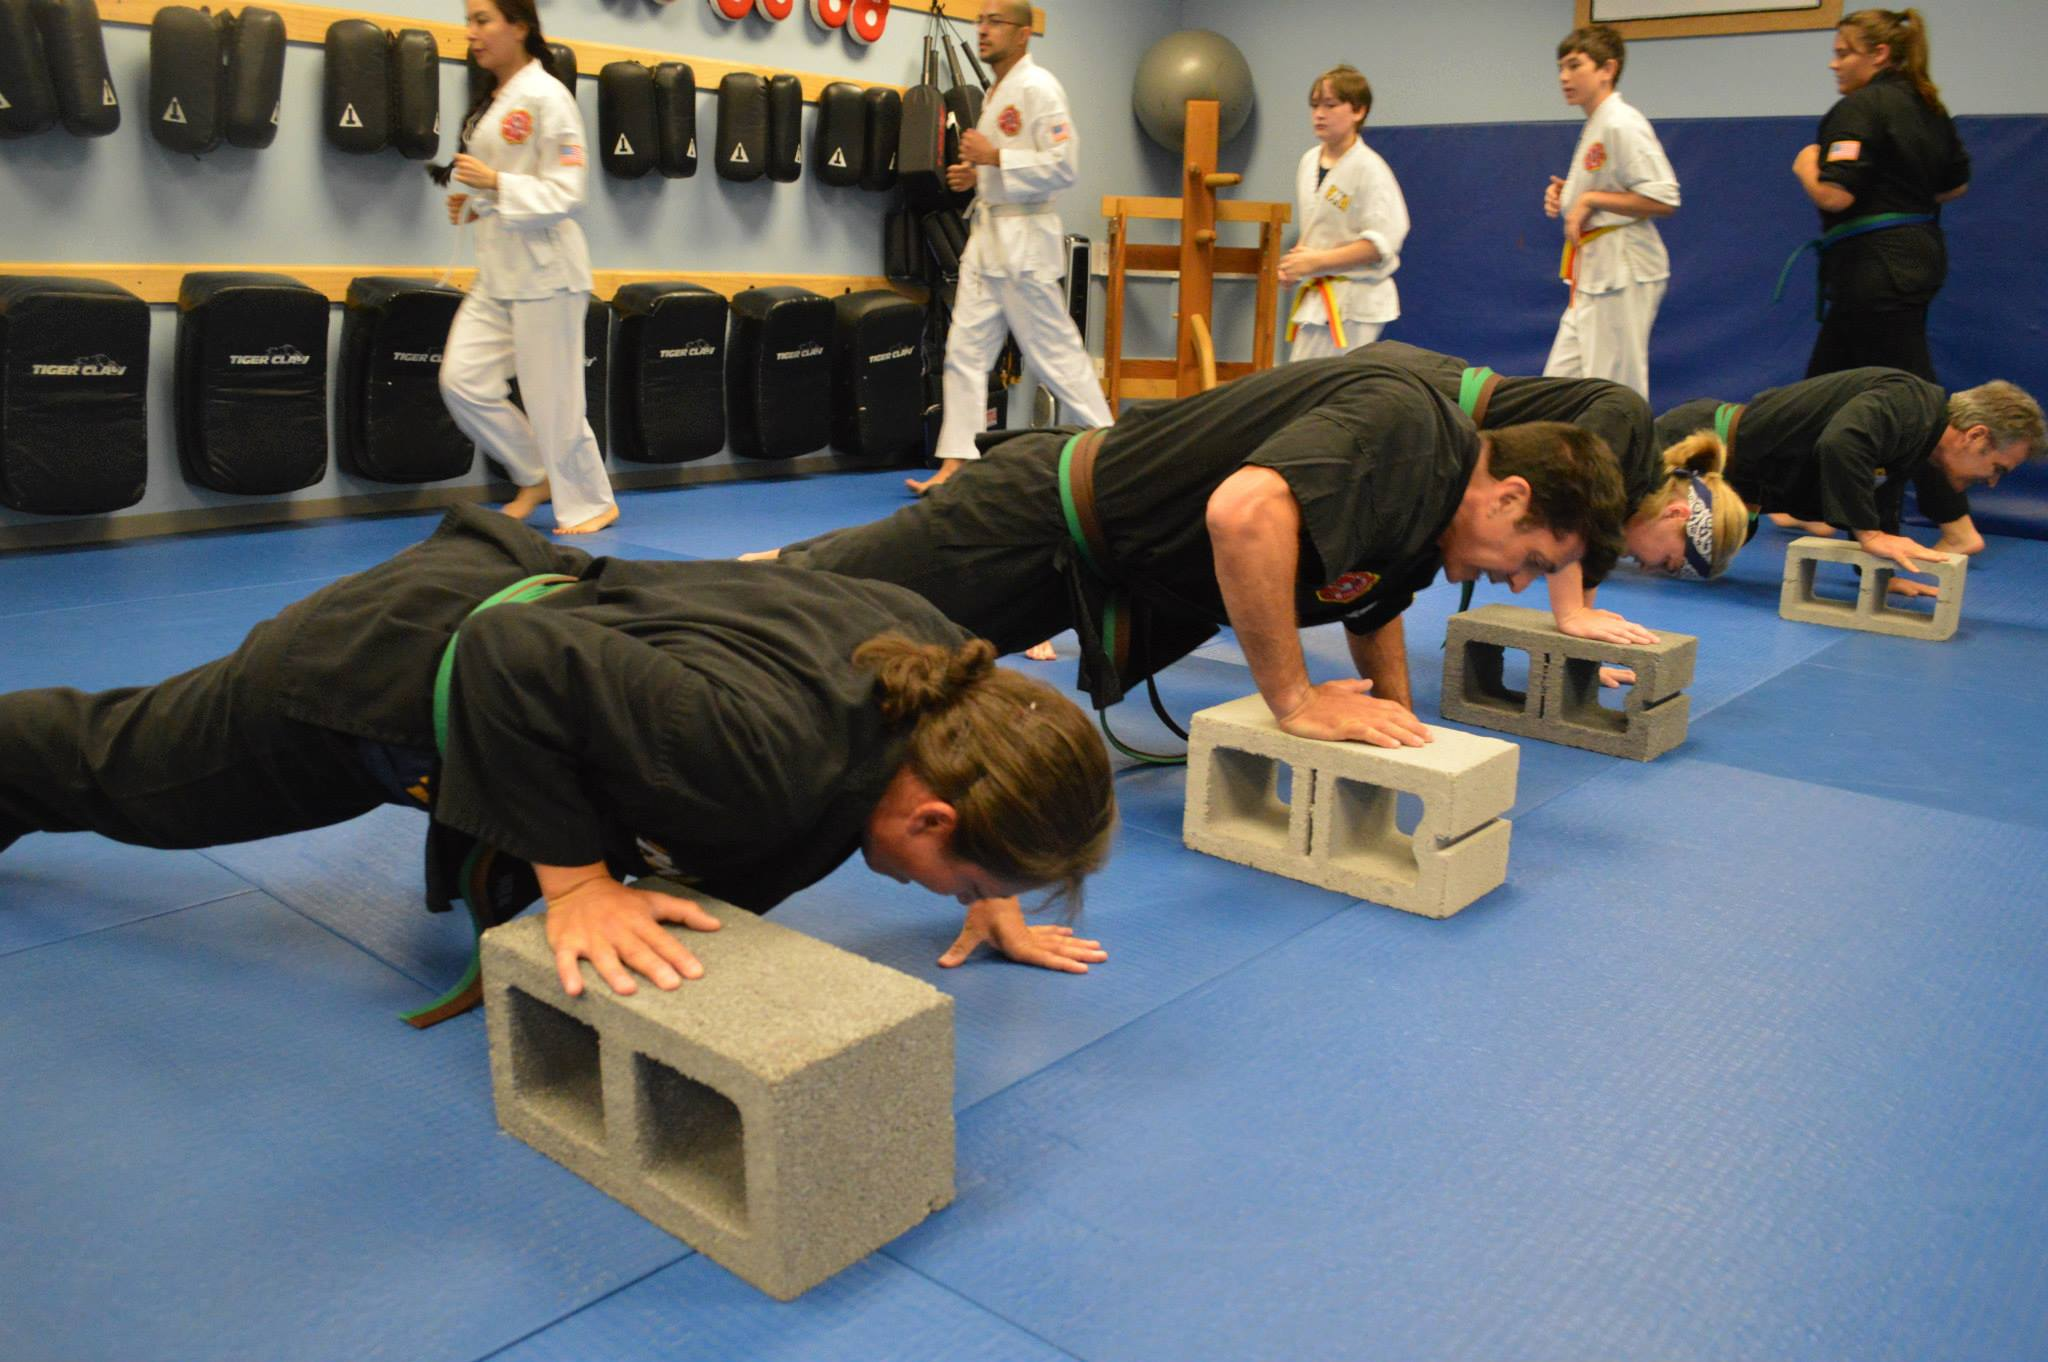 Linda performing a push up exercise with cinderblocks.